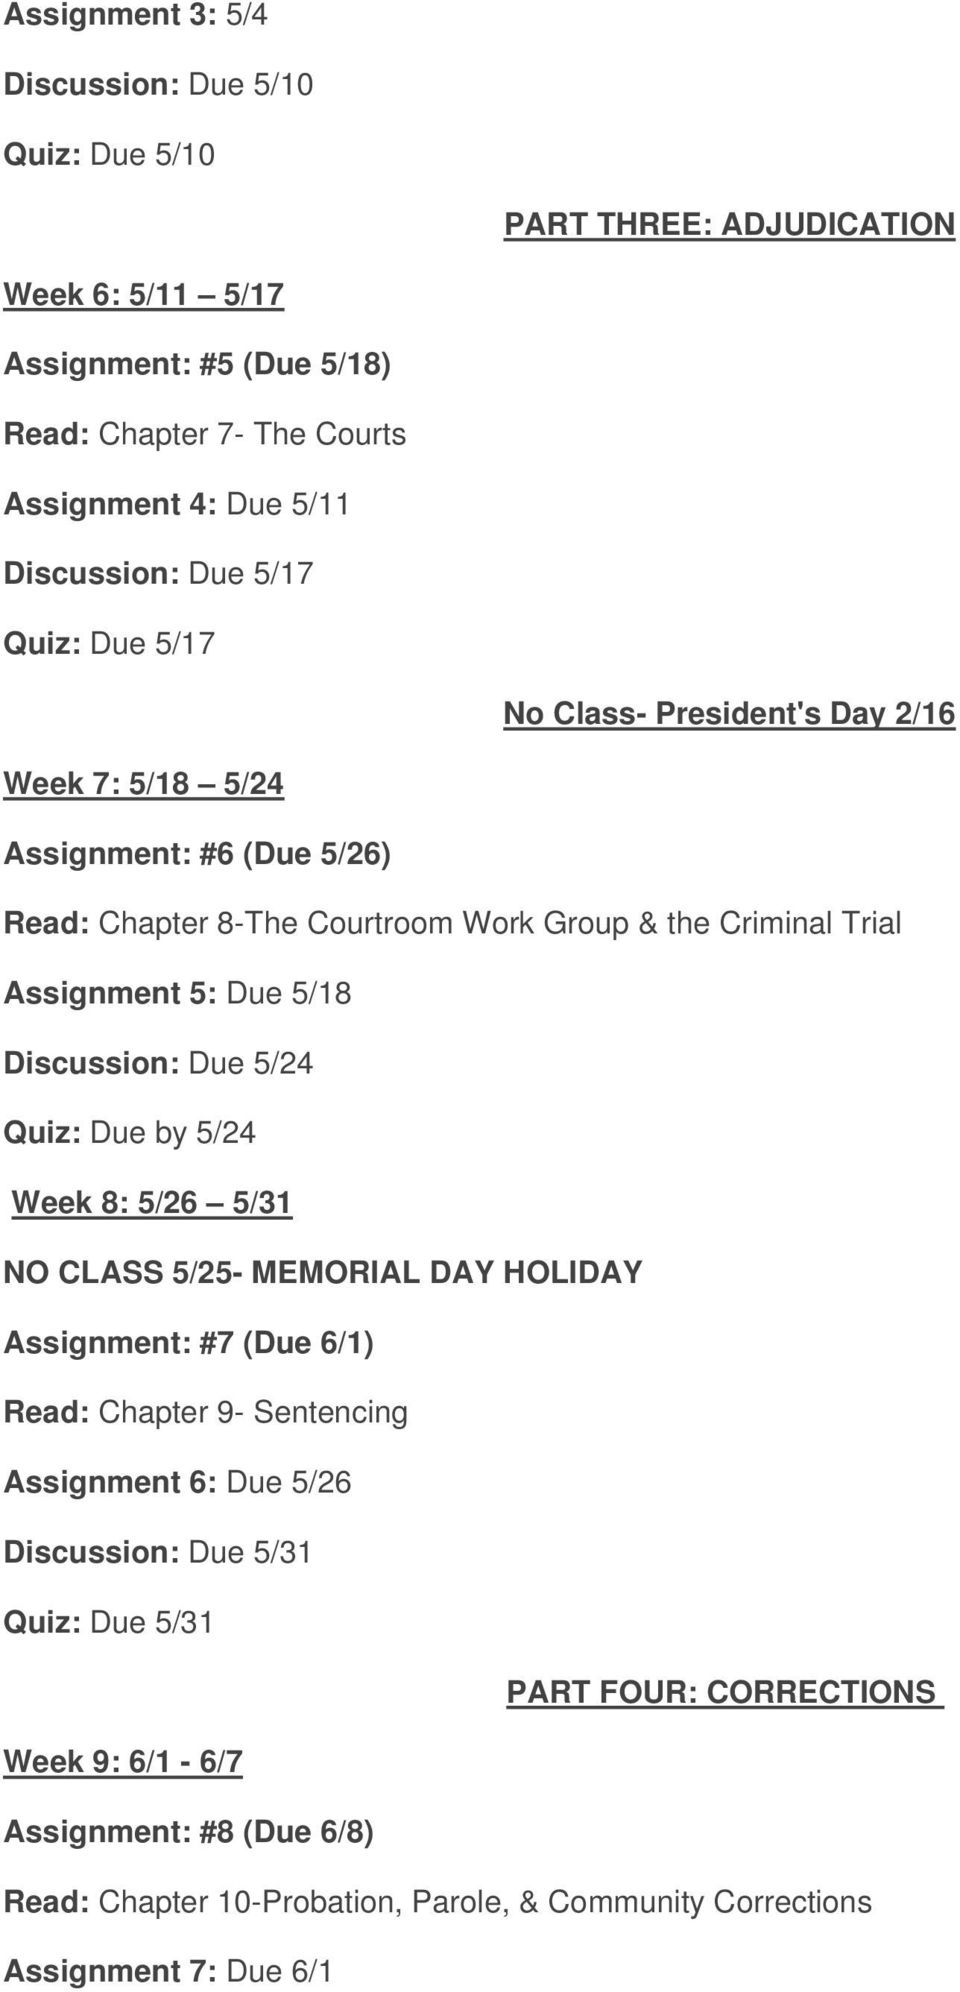 Assignment 5: Due 5/18 Discussion: Due 5/24 Quiz: Due by 5/24 Week 8: 5/26 5/31 NO CLASS 5/25- MEMORIAL DAY HOLIDAY Assignment: #7 (Due 6/1) Read: Chapter 9- Sentencing Assignment